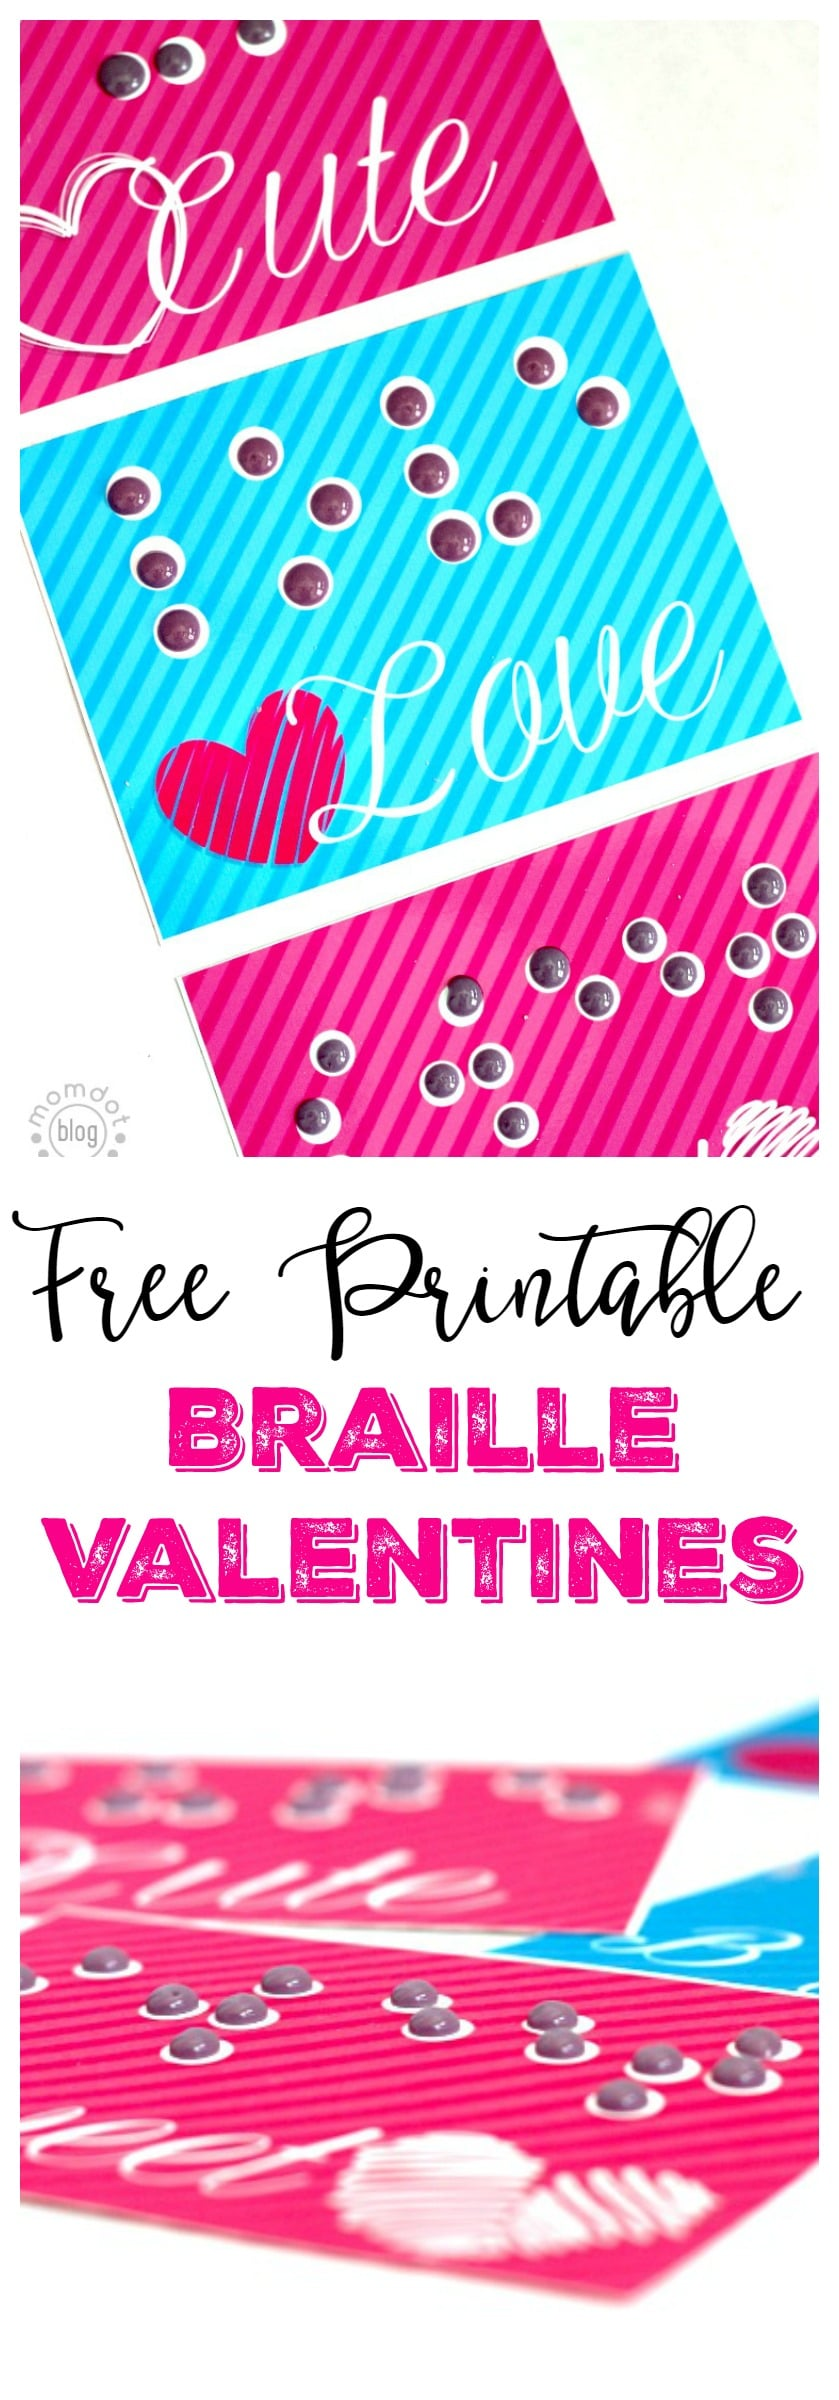 Braille Valentines: Free Printable to create Braille Valentines with a simple candy dot peel recipe, pass out to children that may feel left out this season due to sight